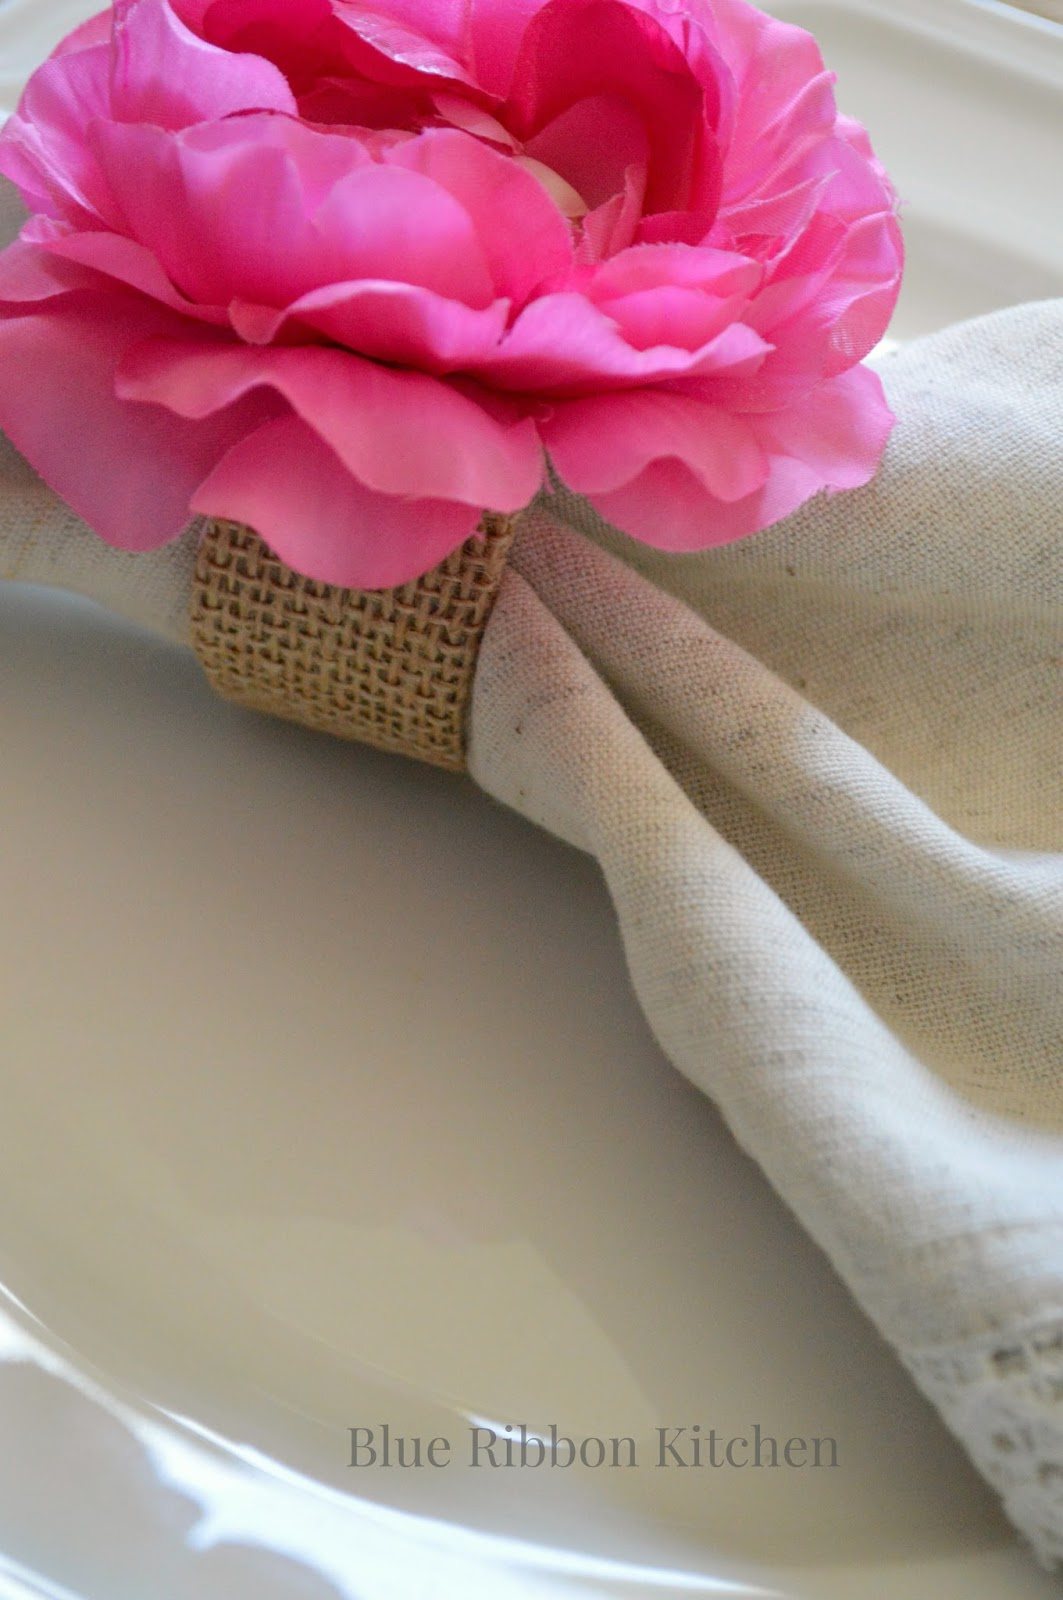 Blue ribbon kitchen easy diy flower napkin rings fabric or burlap to wrap napkin ring mightylinksfo